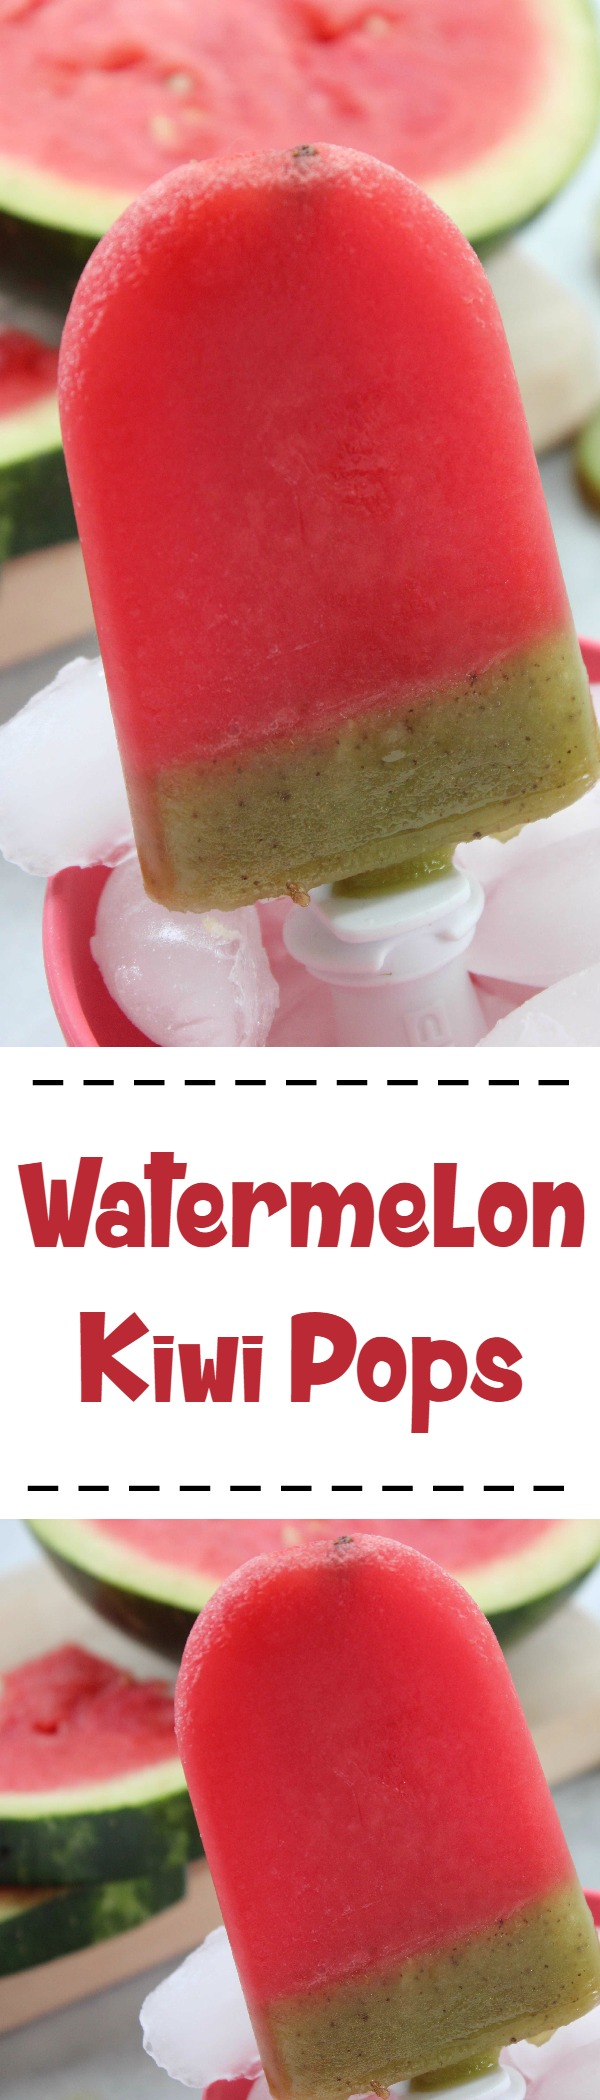 Watermelon Kiwi Pops Recipe